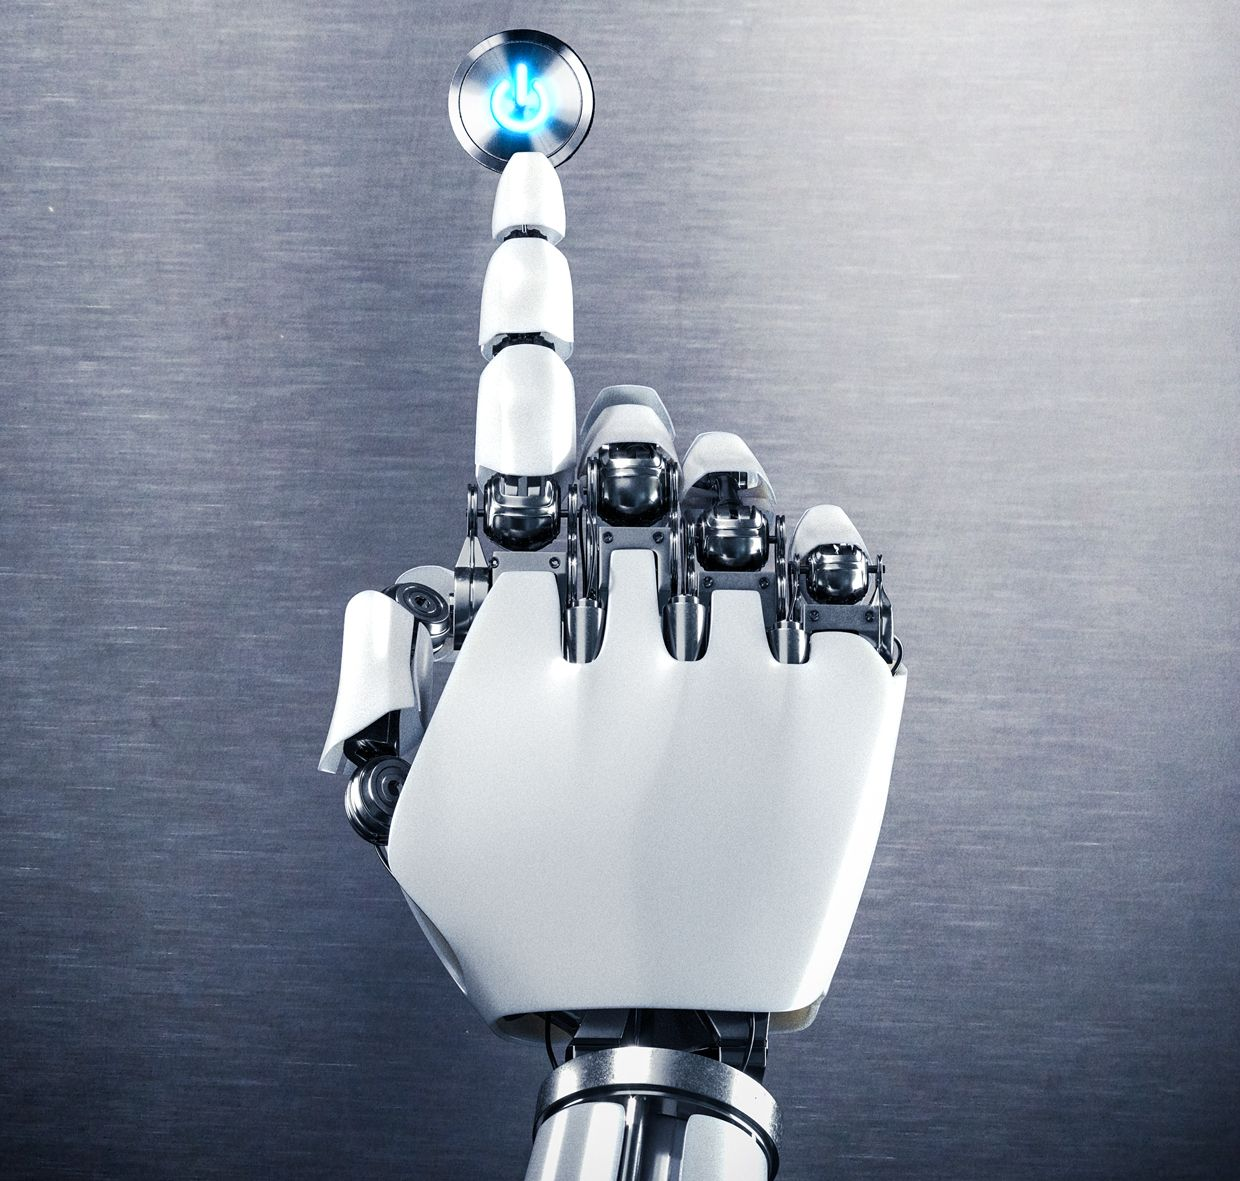 photo of robot hand pushing button